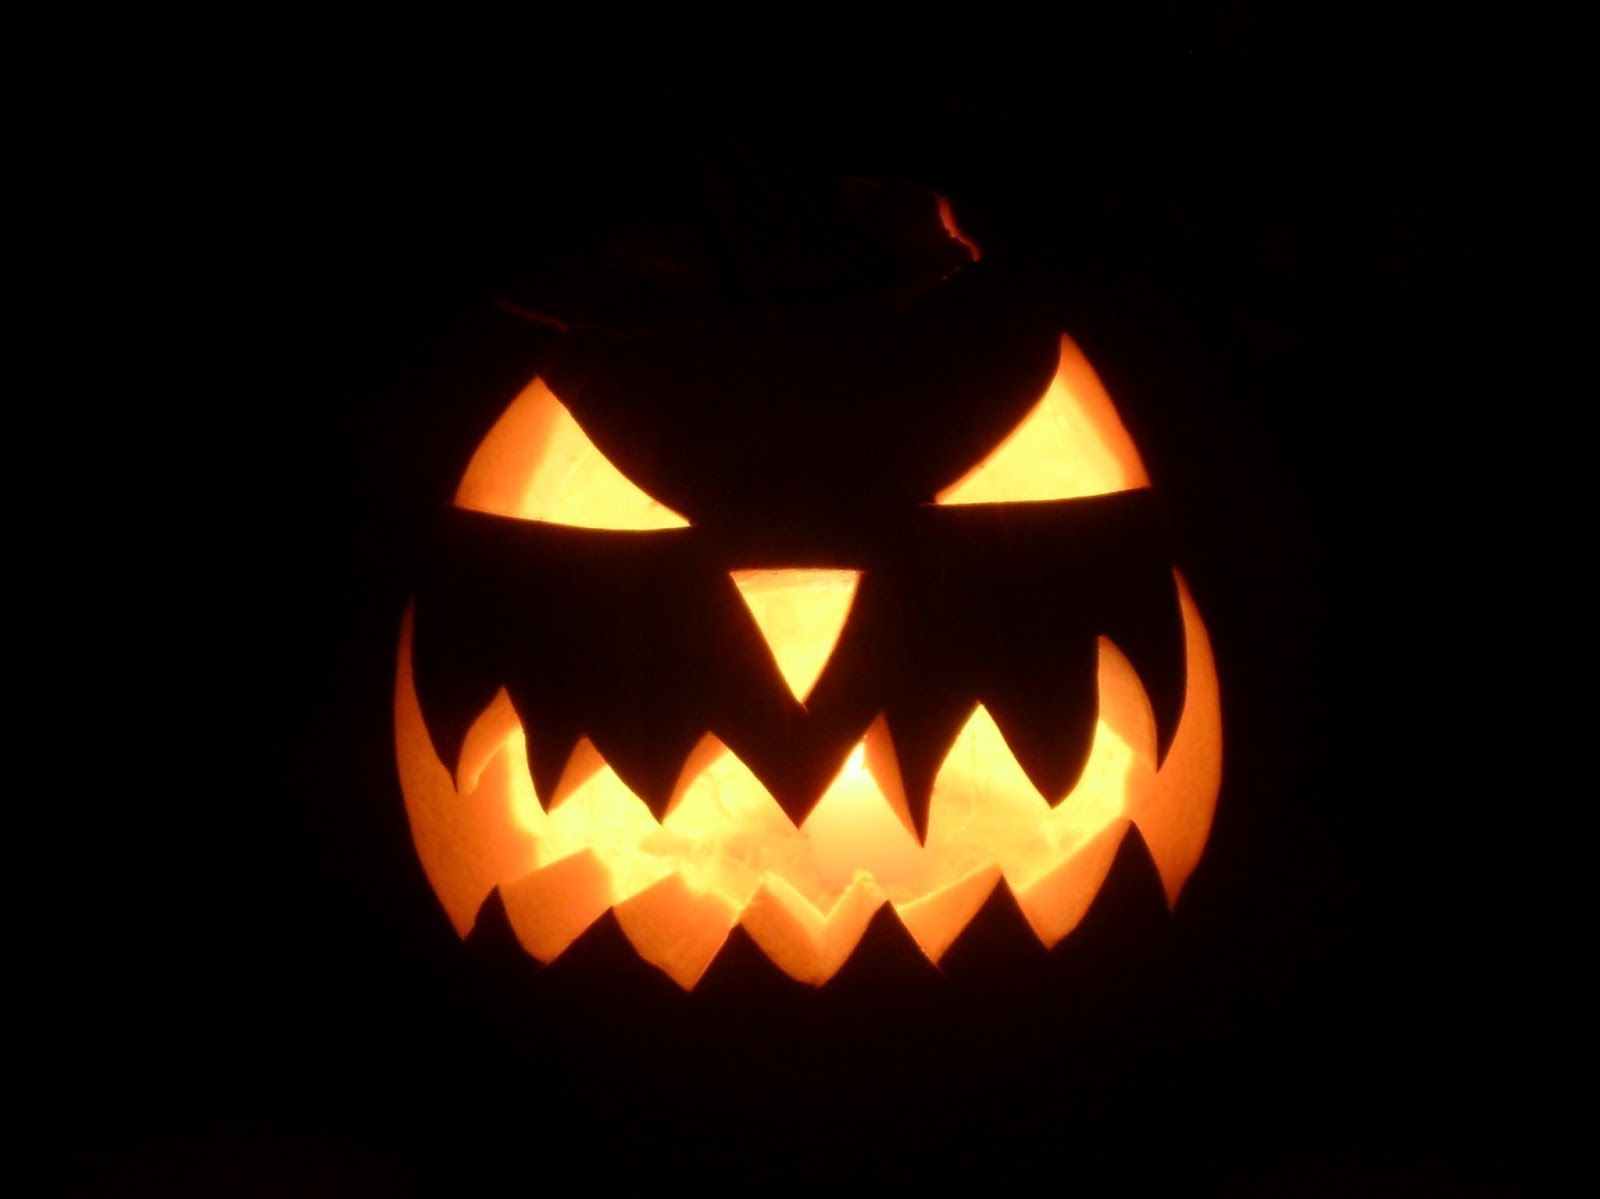 Simple Silly Scary Jack O Lantern Faces Images